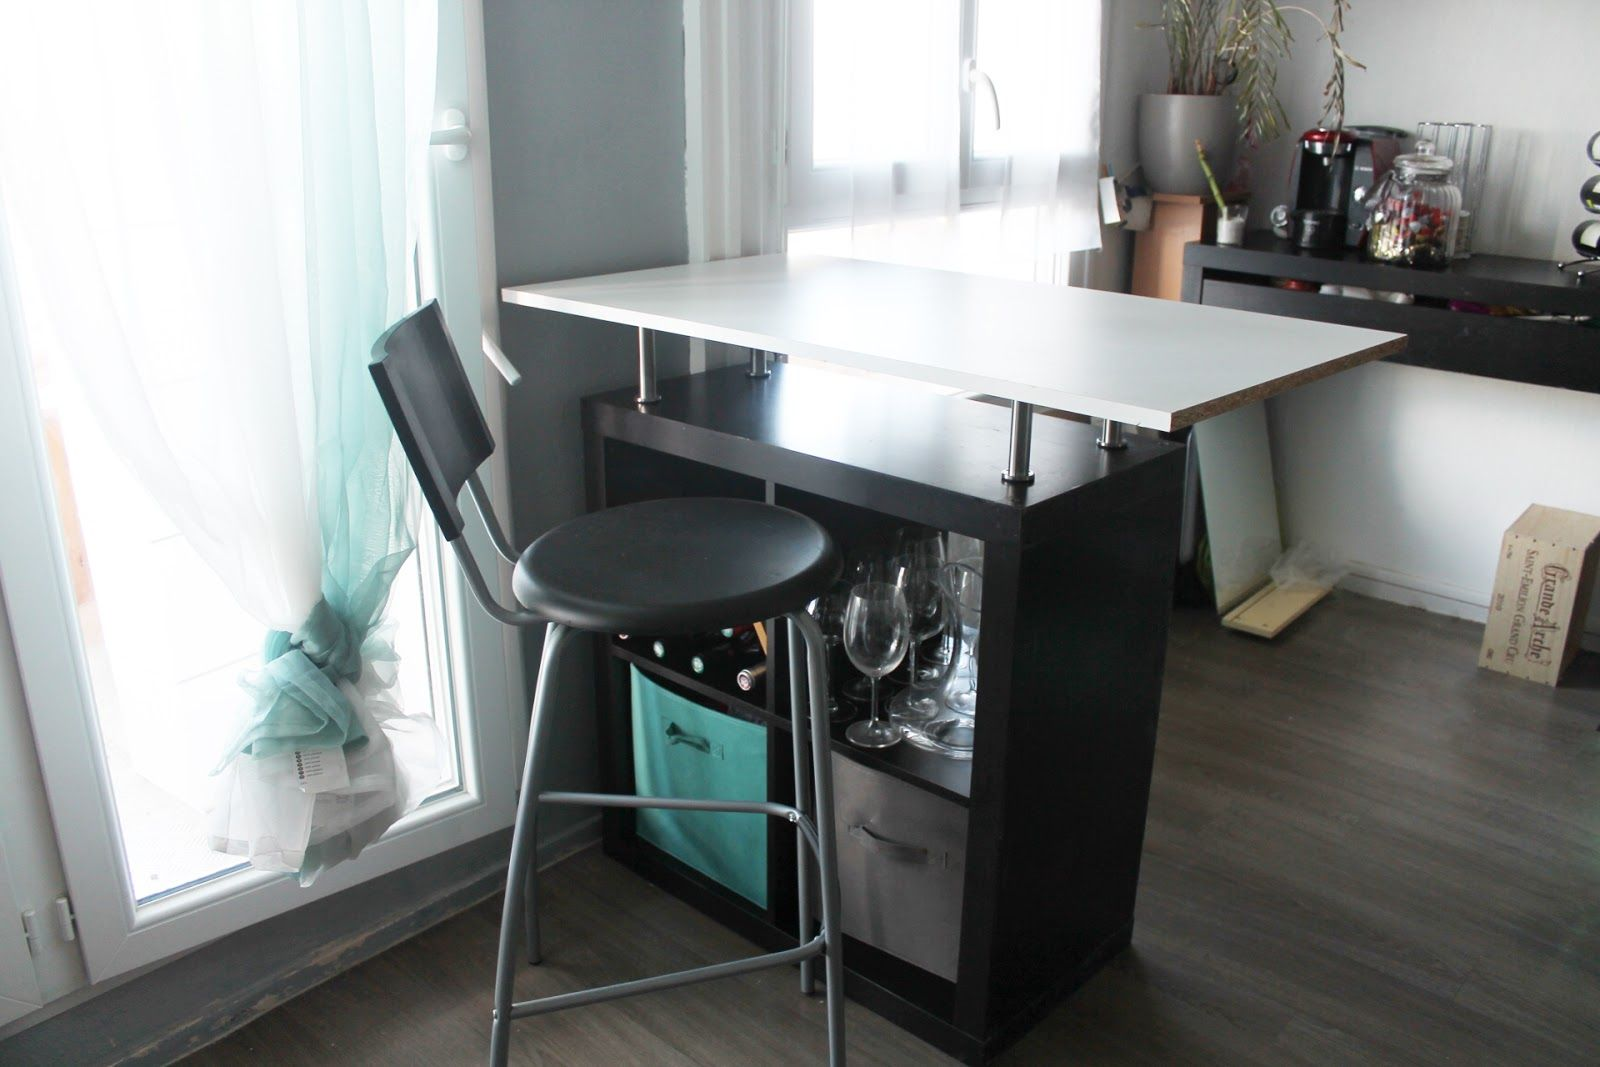 transformer un meuble ikea en bar bureau pinterest